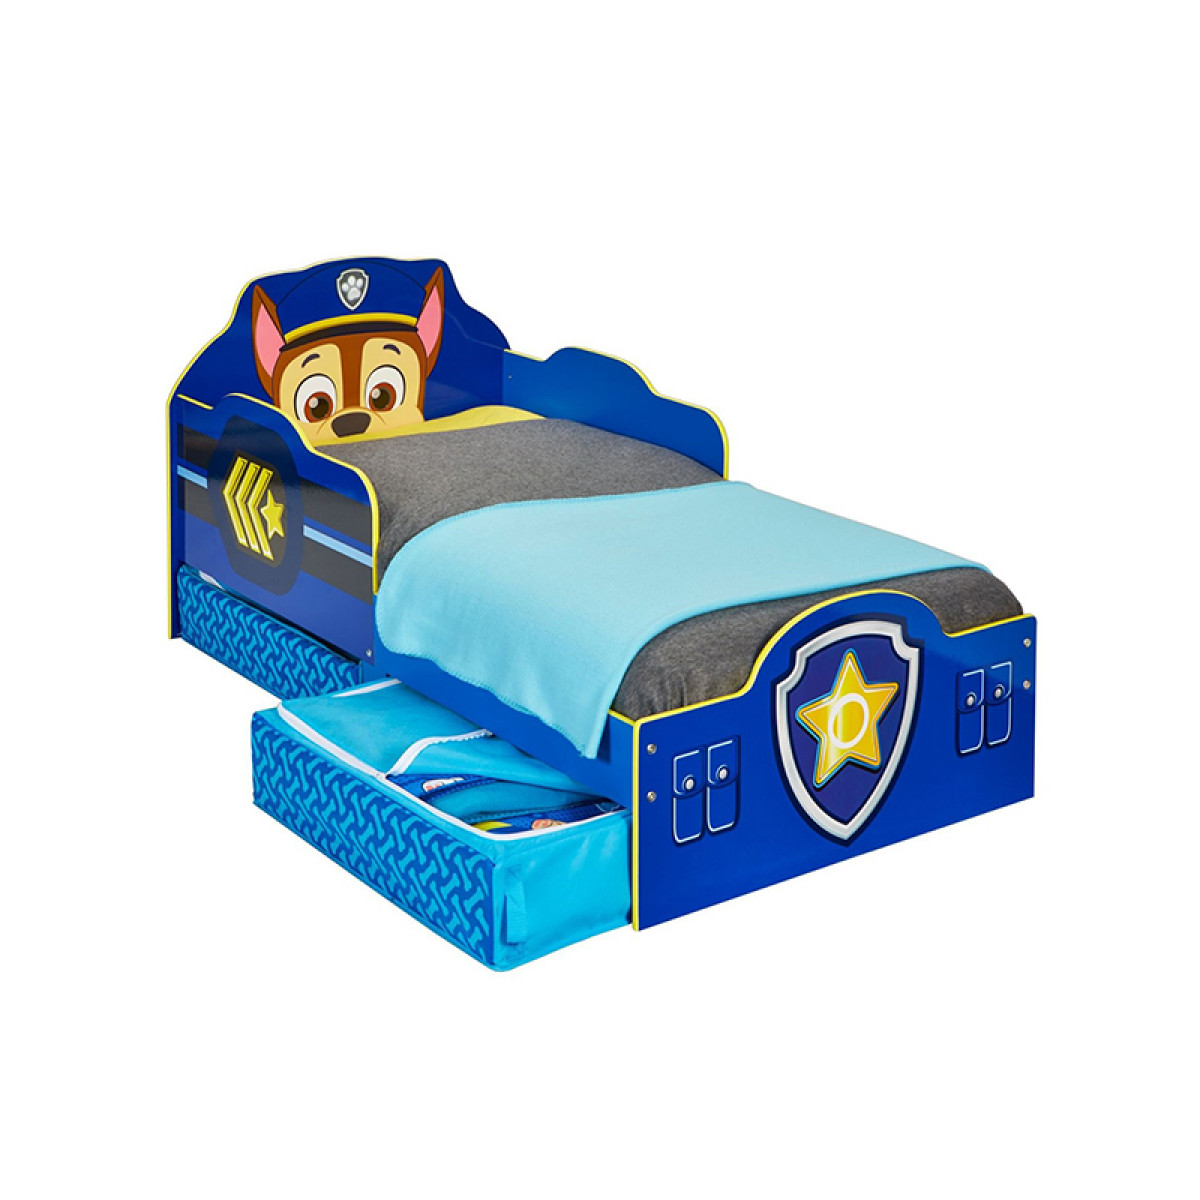 Paw Patrol Chase Toddler Bed With Storage Bedroom